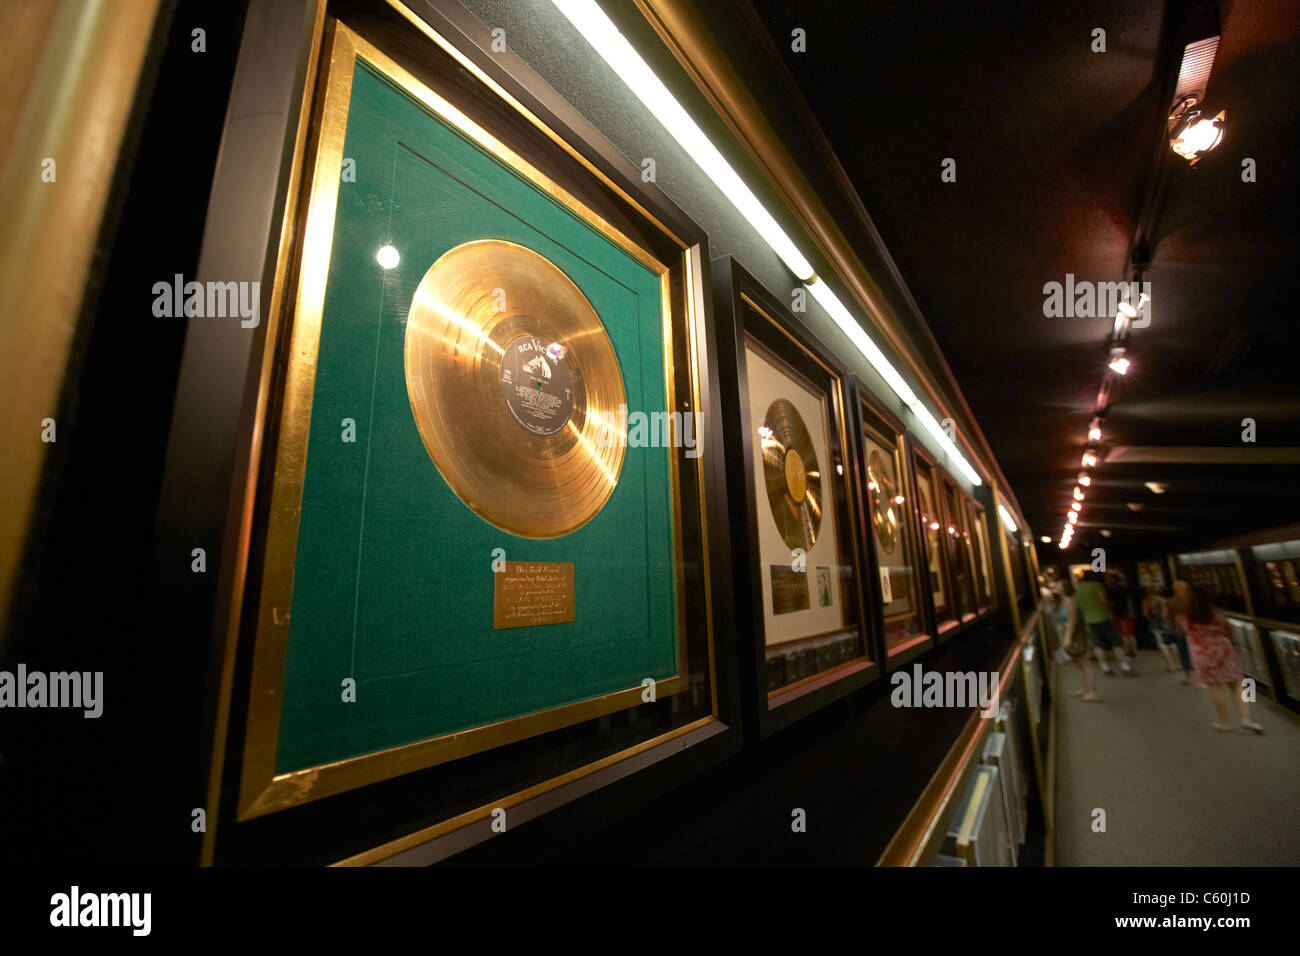 tourists visit hall of gold records graceland mansion memphis tennessee usa - Stock Image